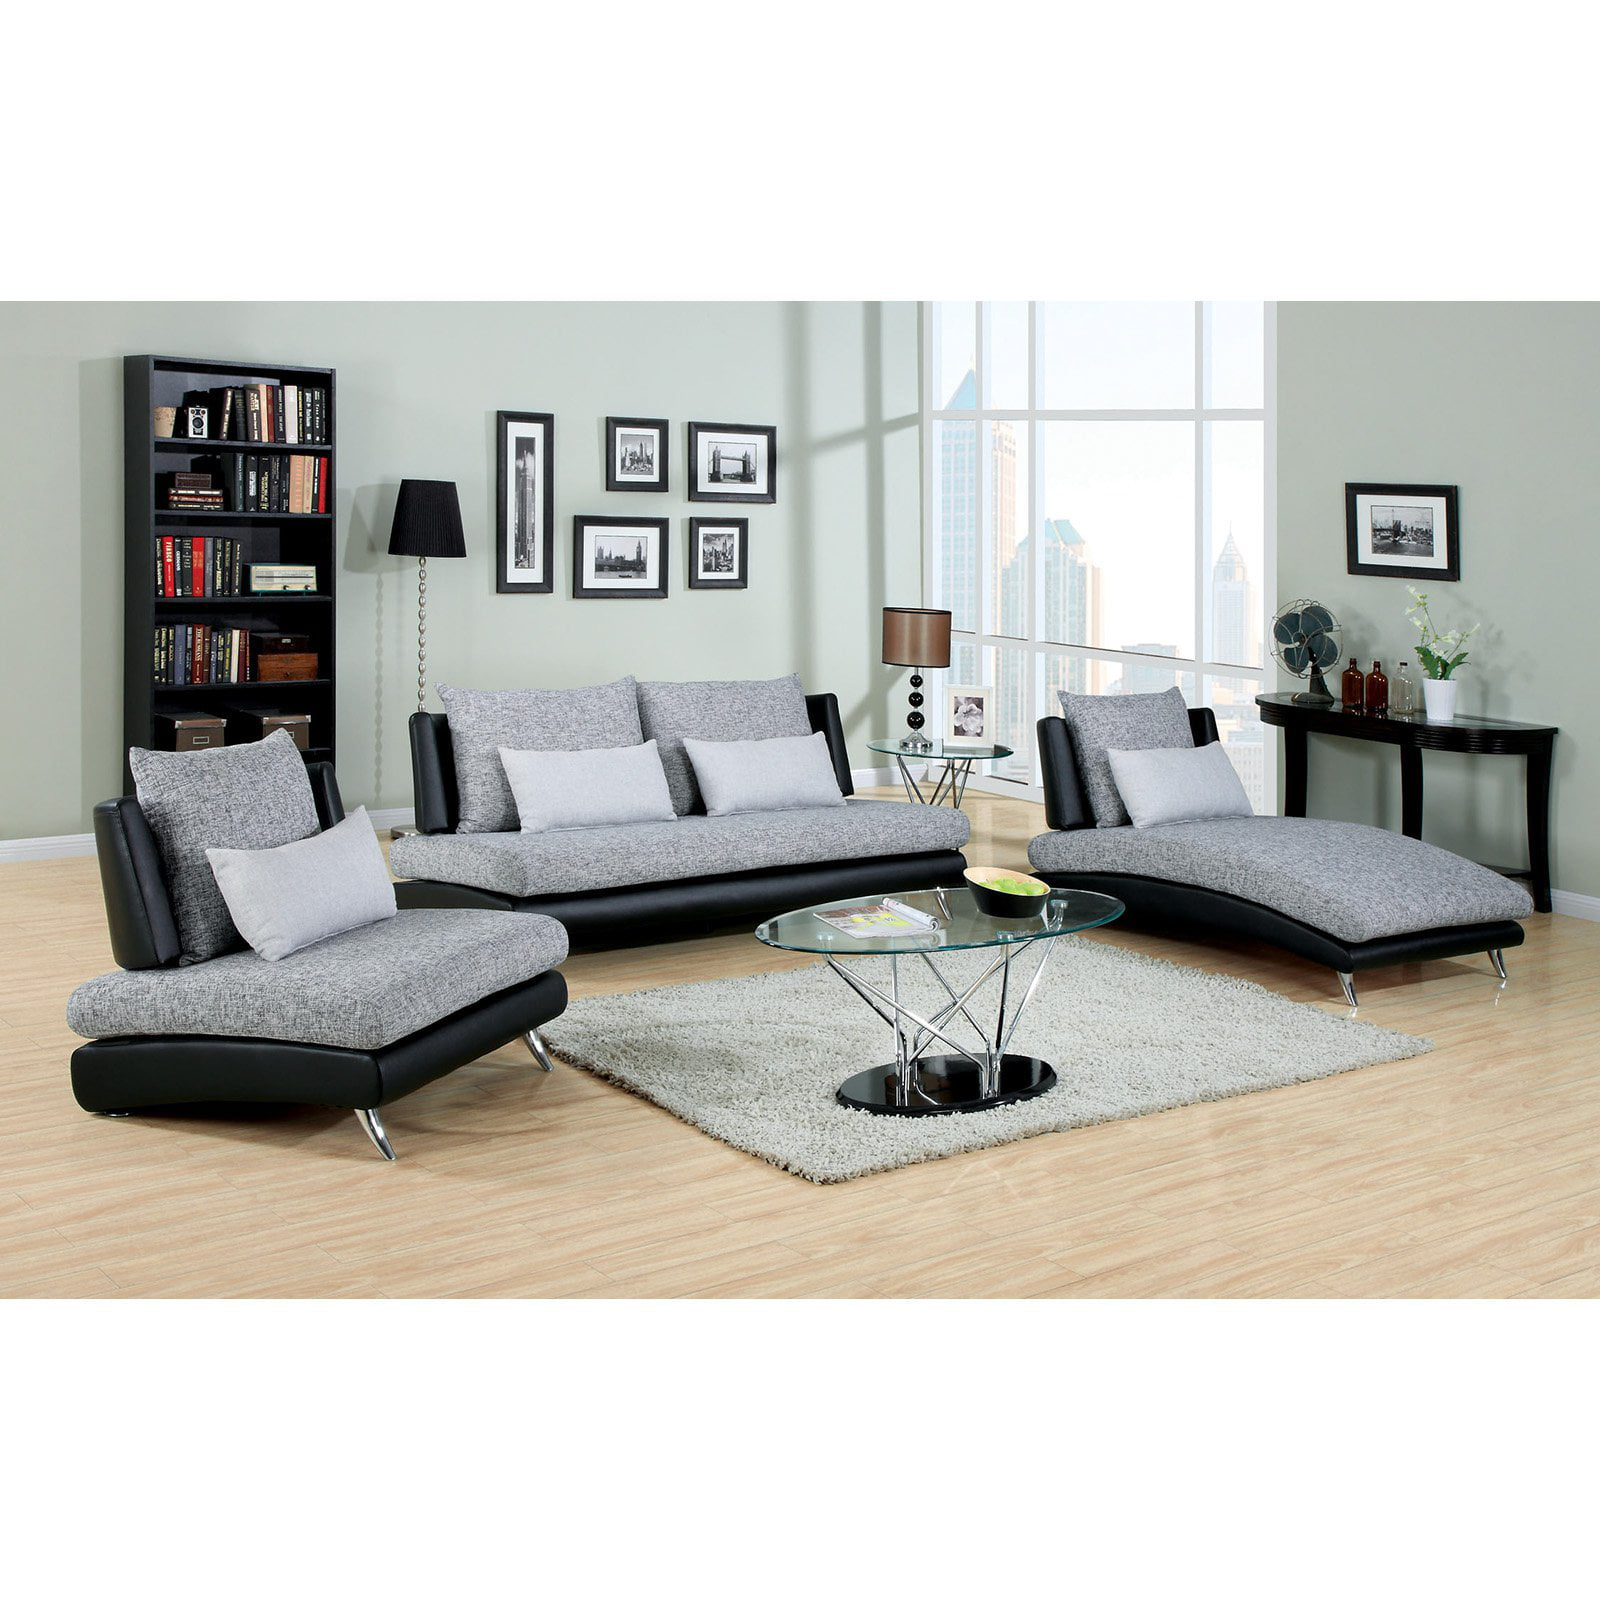 Furniture Of America Cole 3 Piece Fabric And Faux Leather Sofa Set   Gray /  Black   Walmart.com